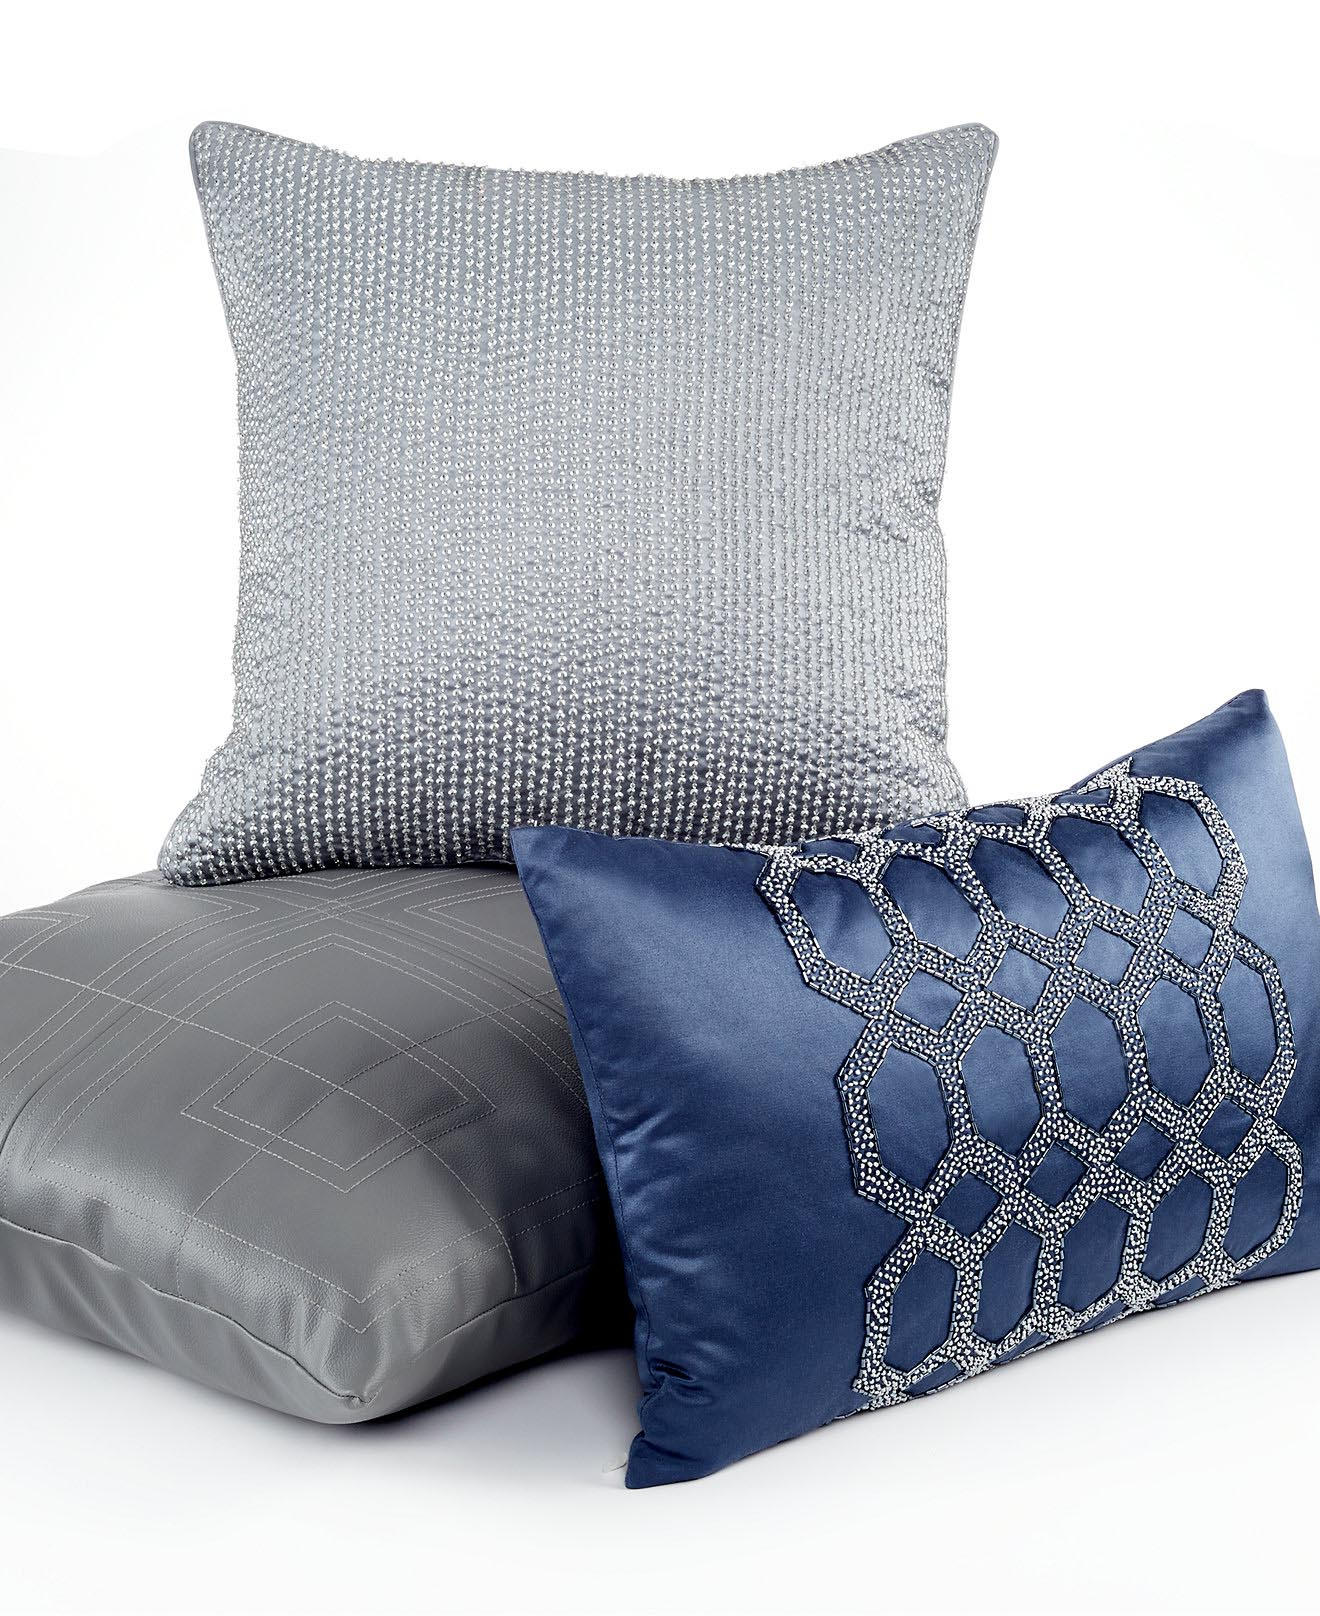 Navy Blue Pillows Decorative